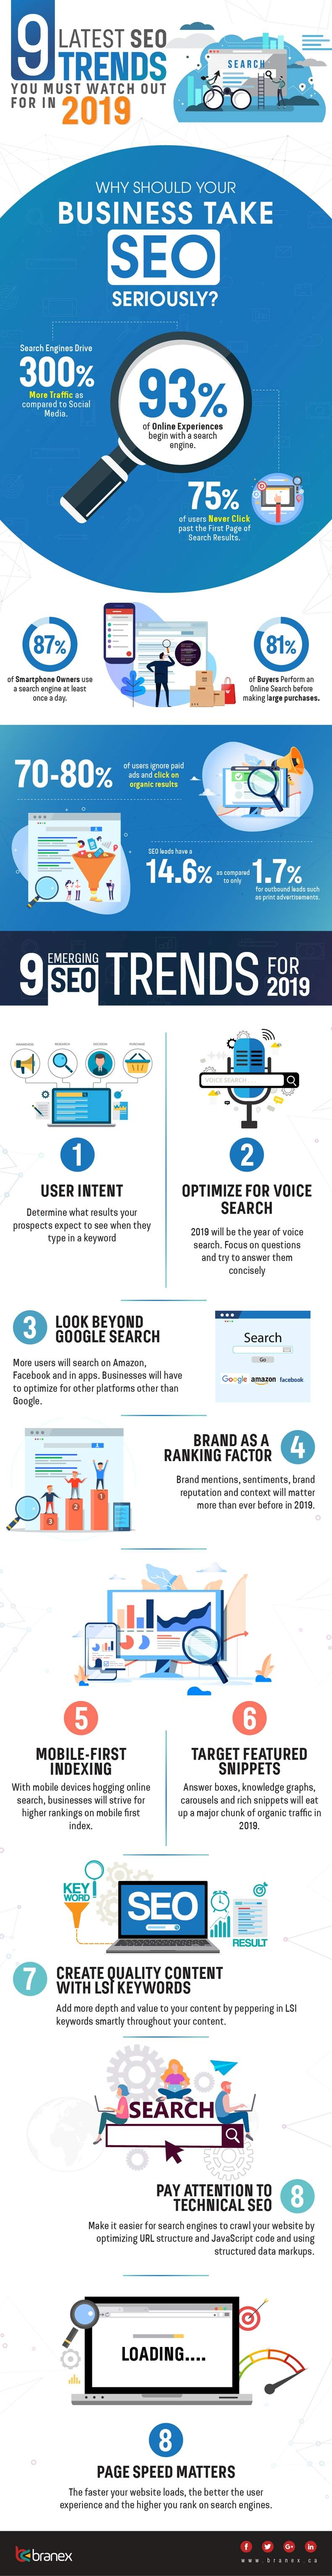 2019 SEO Trends | Marketing Infographic